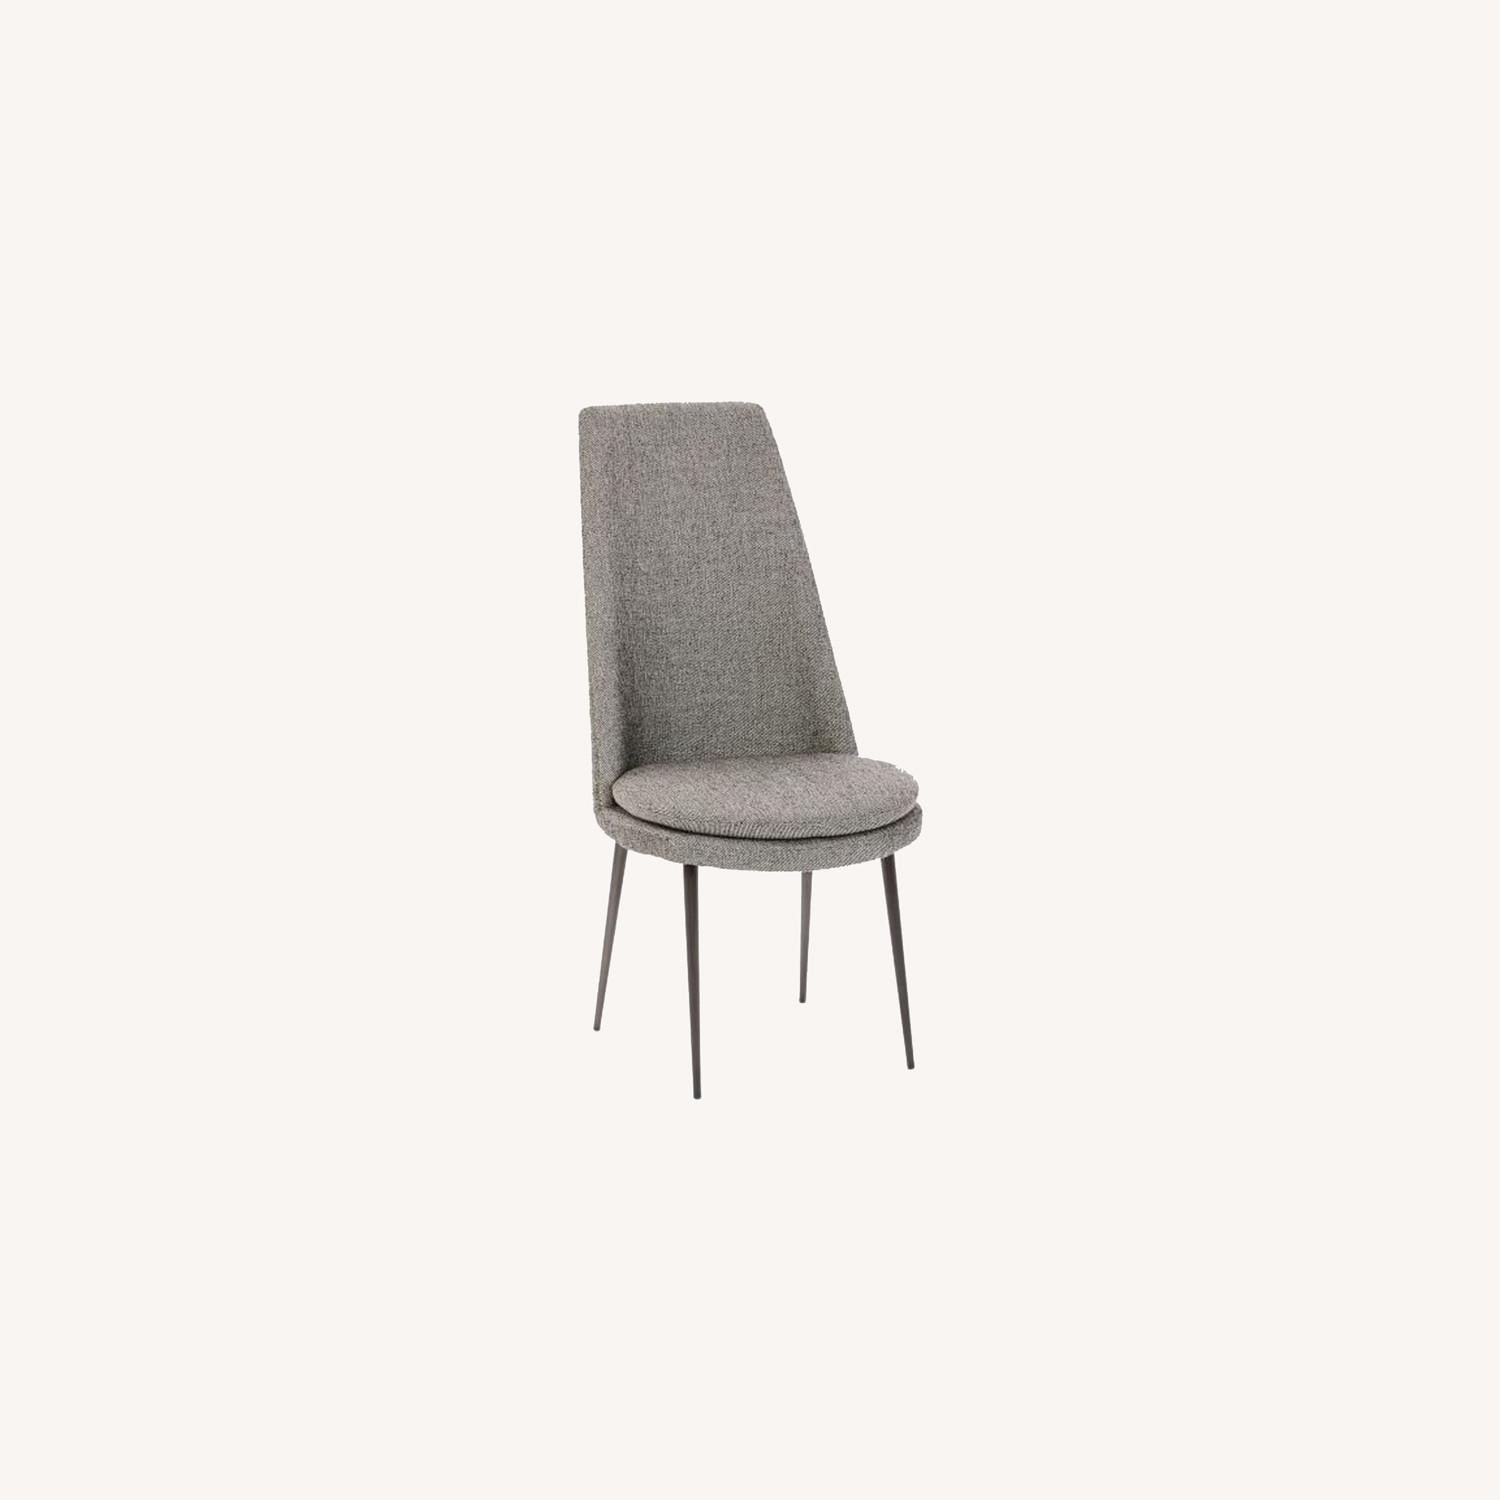 West Elm Finley High-Back Upholstered Dining Chair - image-0